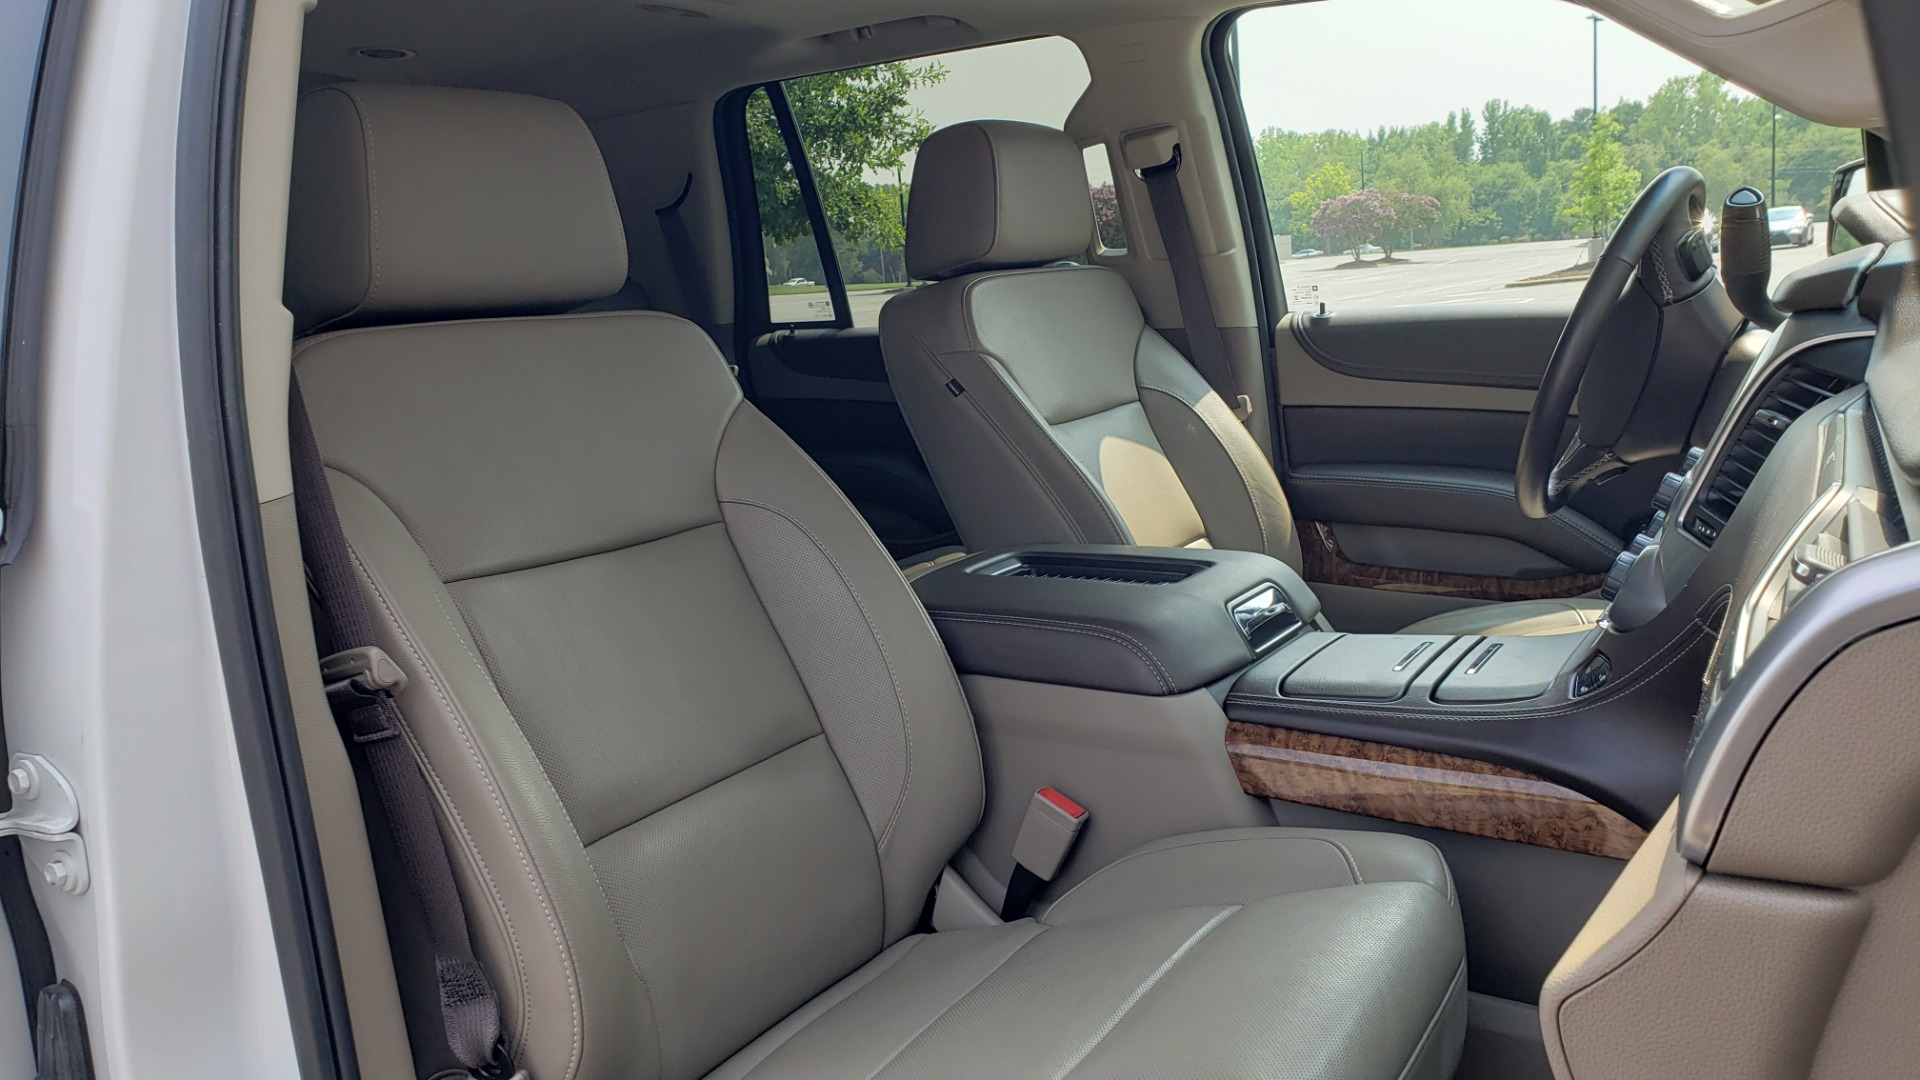 Used 2018 Chevrolet TAHOE PREMIER 4WD / NAV / SUNROOF / BOSE / 3-ROW / HUD / REARVIEW for sale $63,995 at Formula Imports in Charlotte NC 28227 72